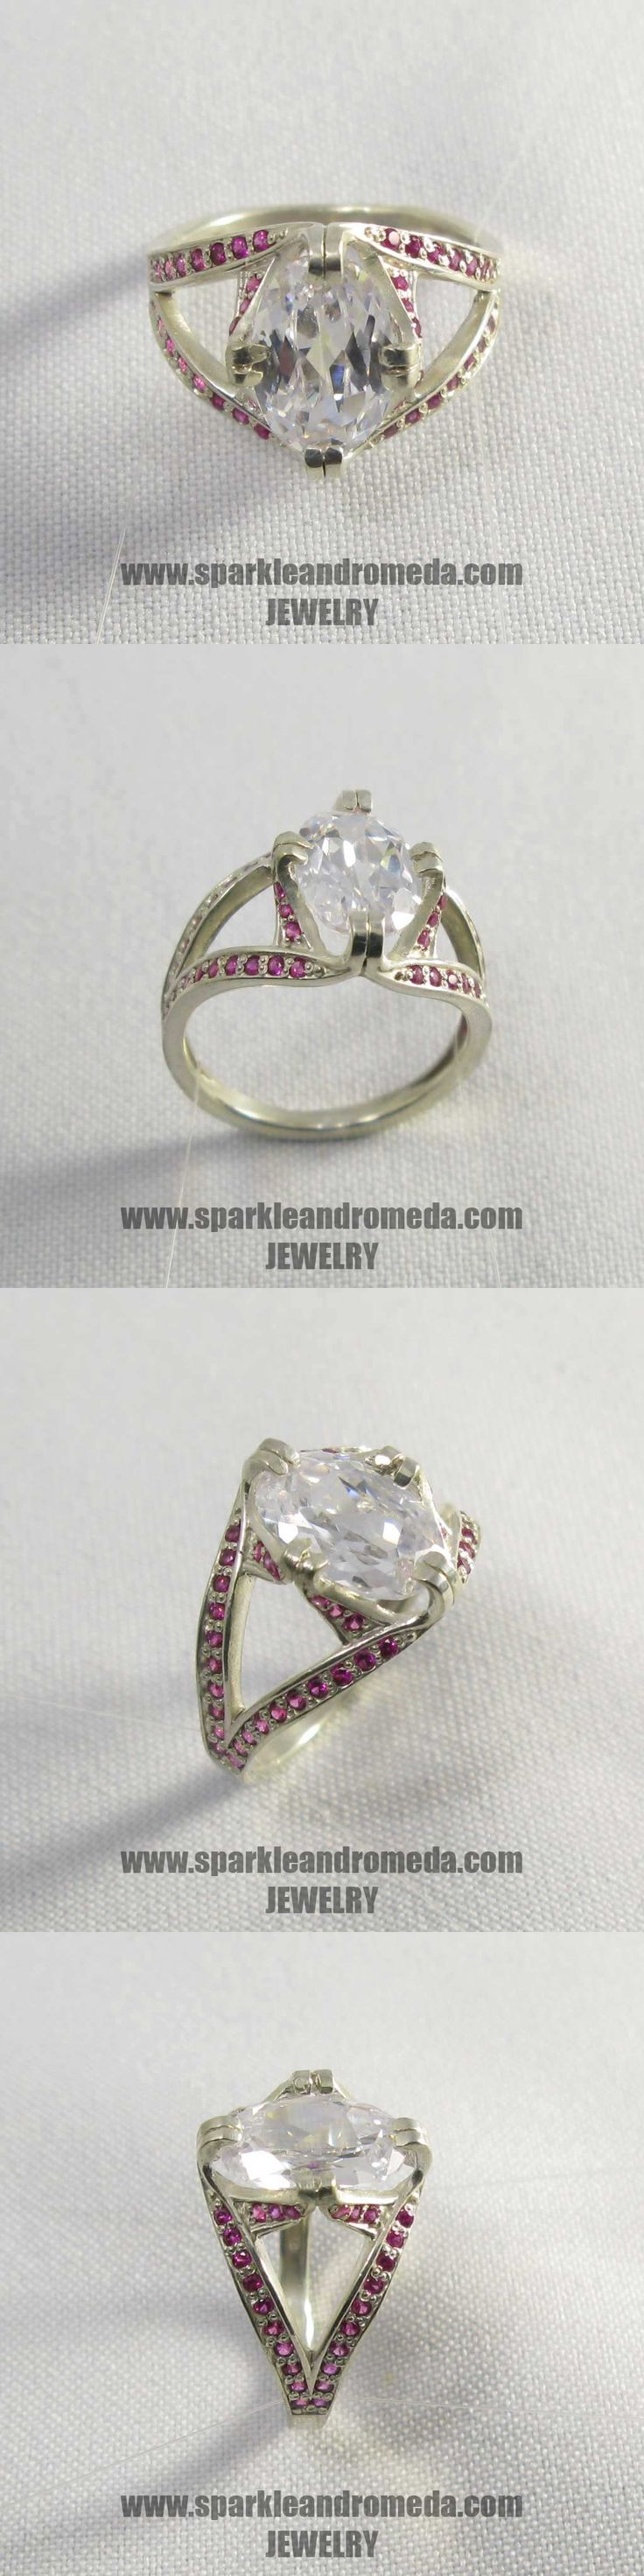 Sterling 925 silver ring with 1 oval 15×8 mm white topaz color and 52 round 1,25 mm pink ruby color cubic zirconia gemstones.